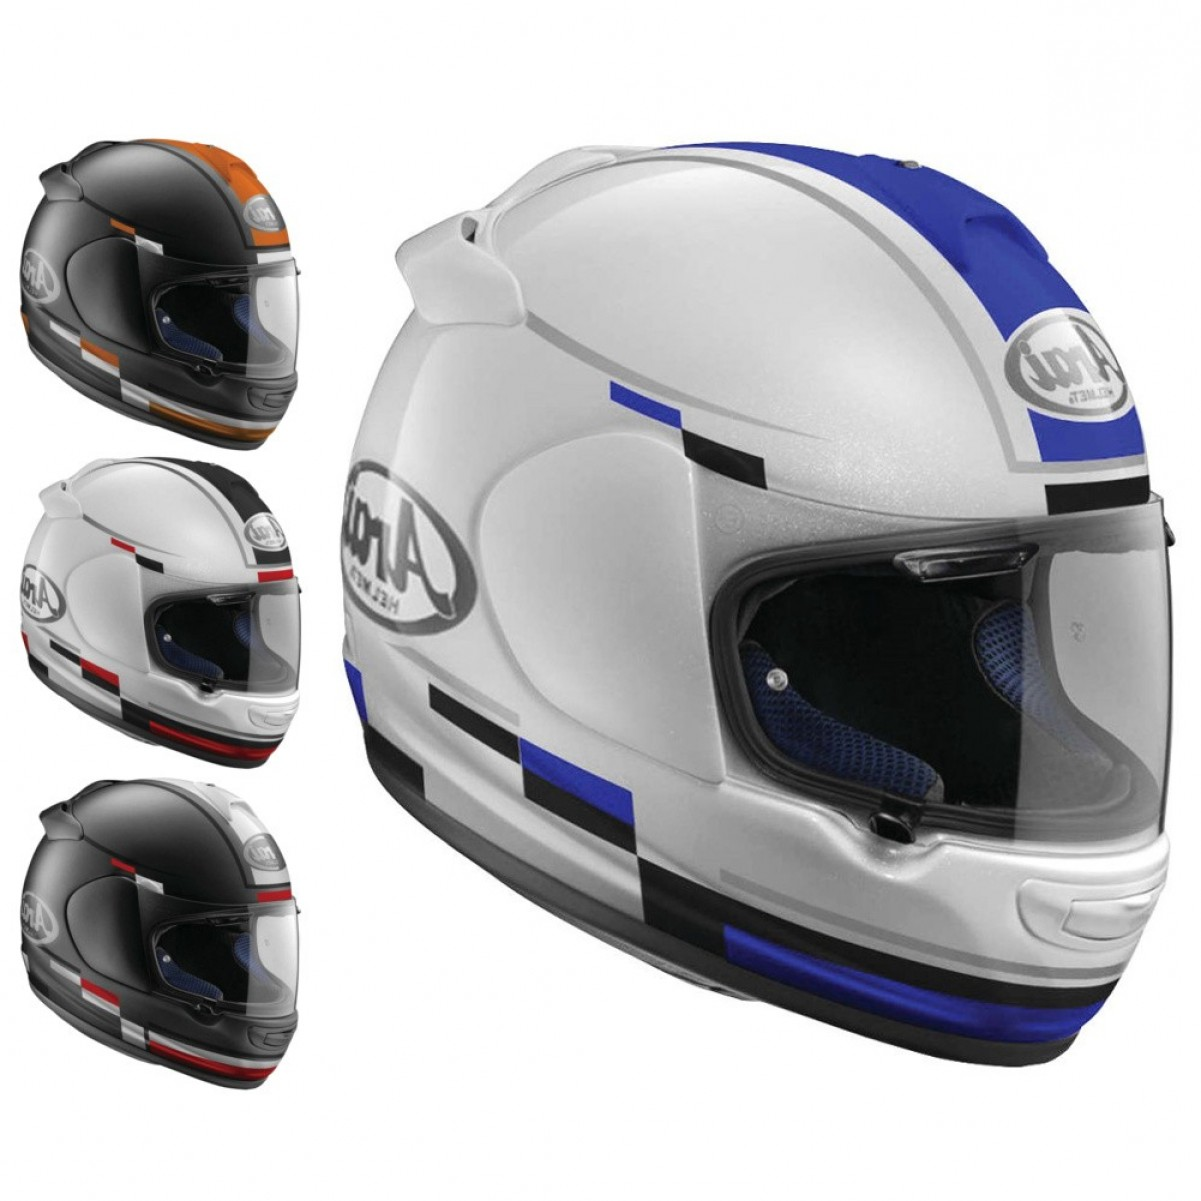 Arai Vector 2 Model: Arai Vector Blaze Mens Motorcycle Helmets